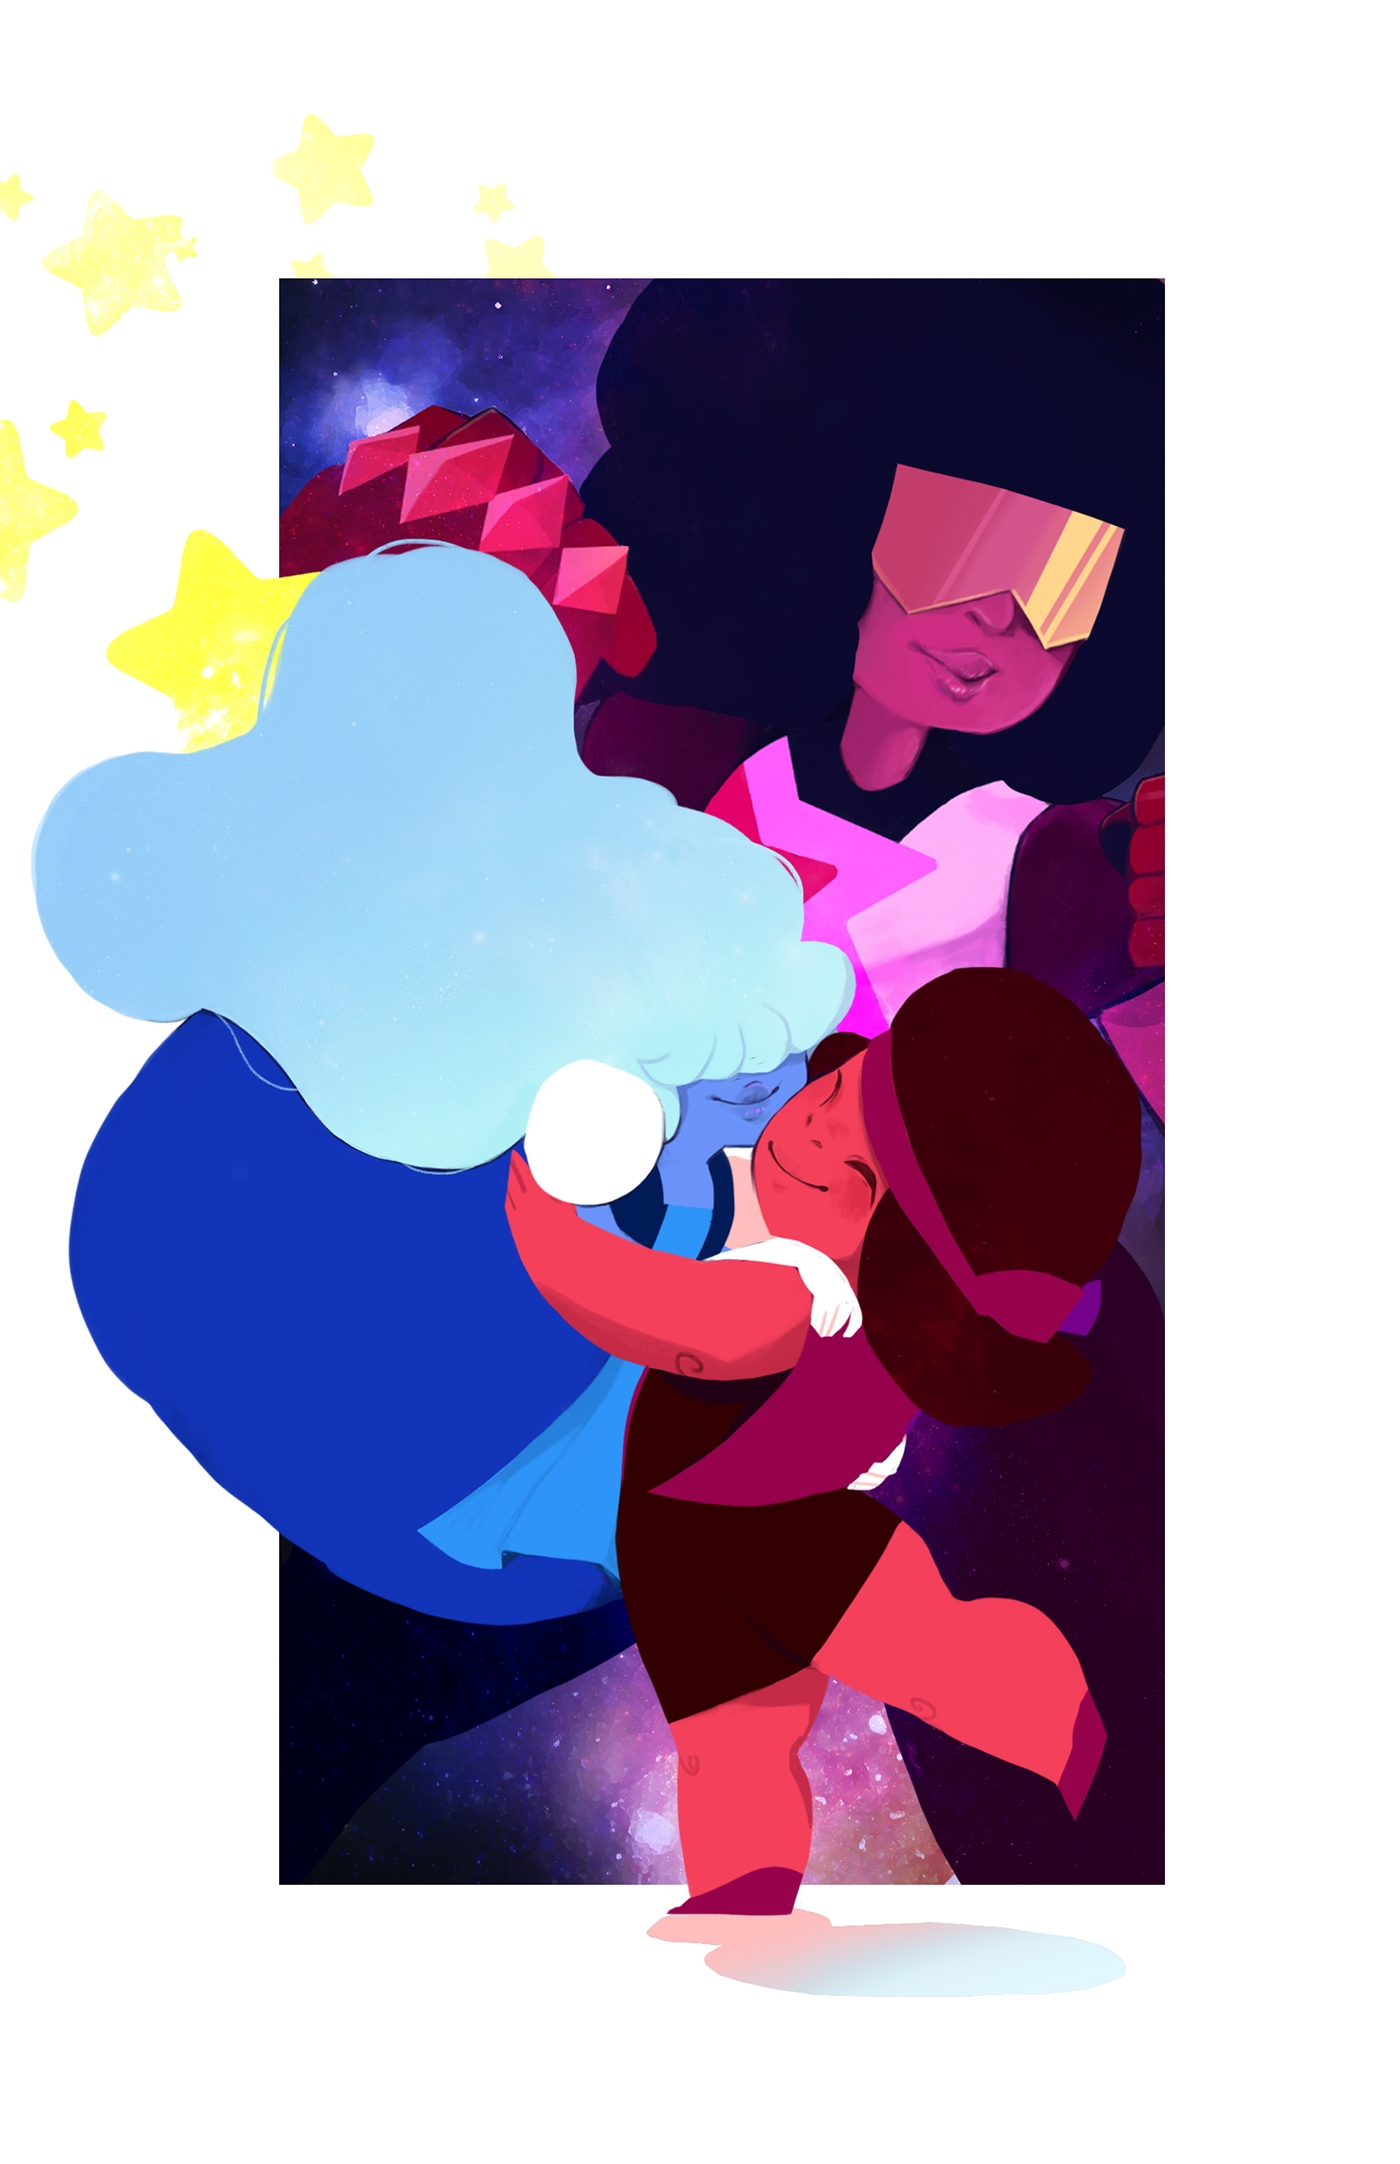 Ruby and Sapphire to Garnet Character Design